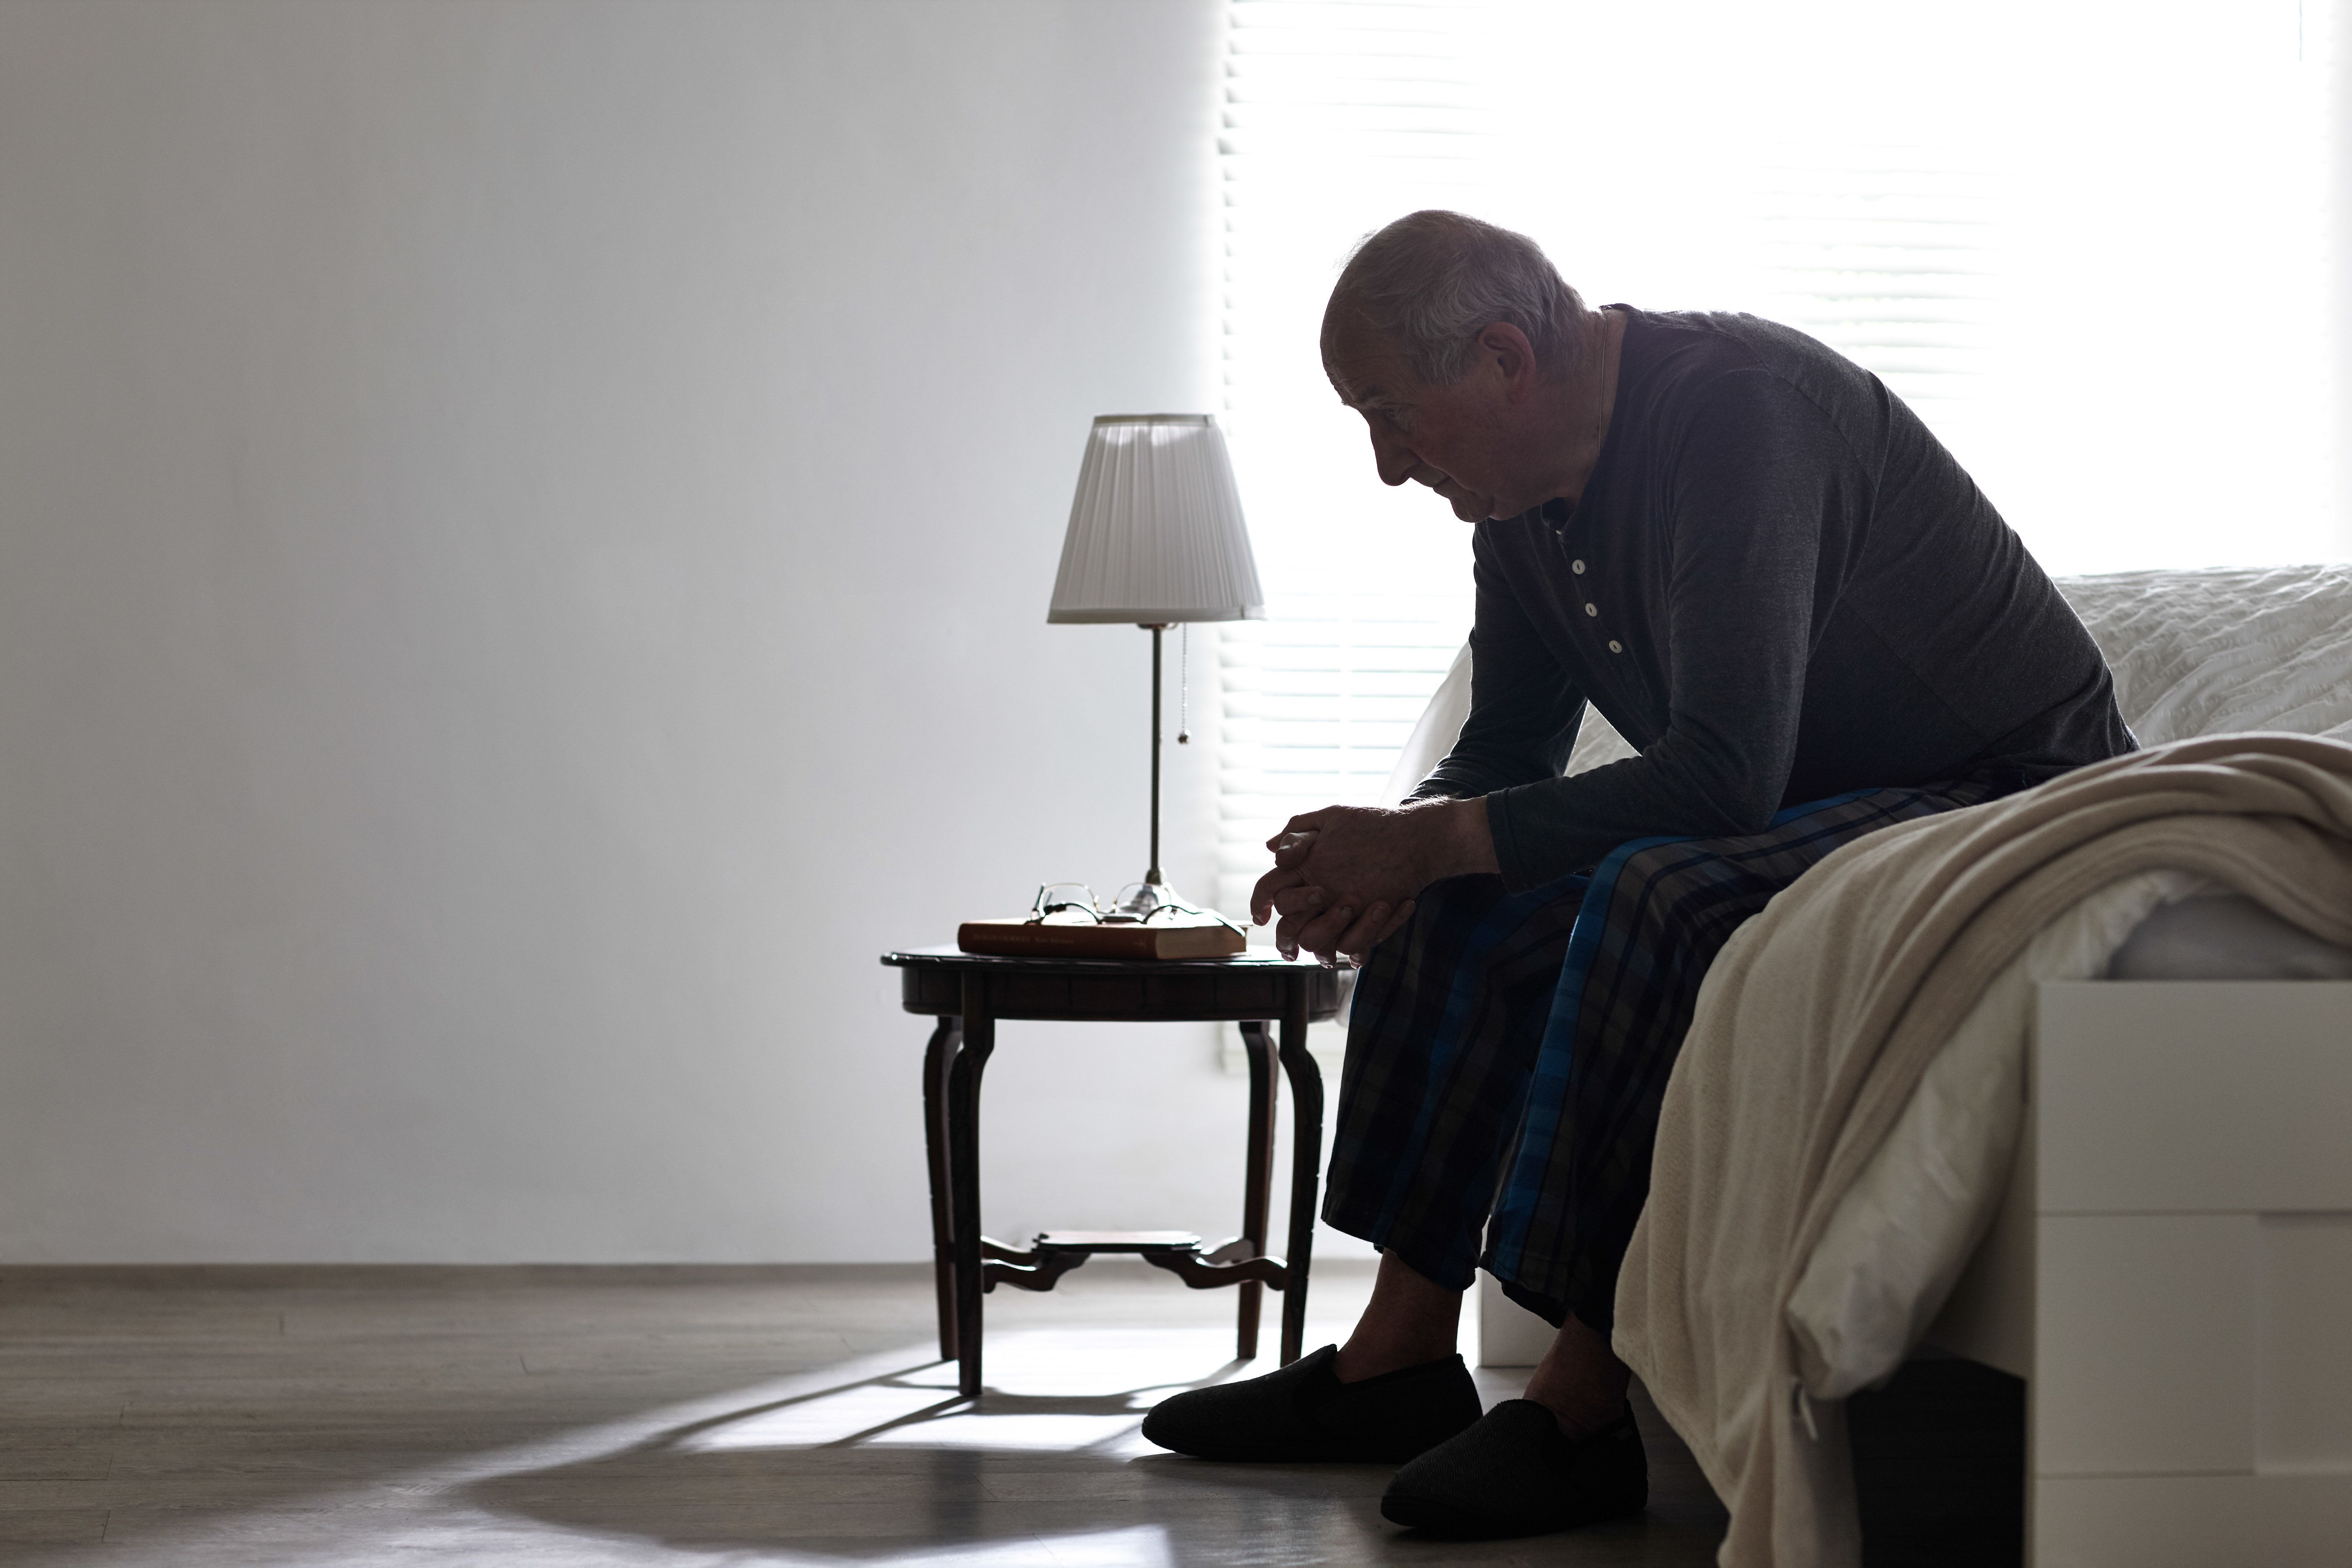 Elderly man sitting on bed looking serious - Indoors